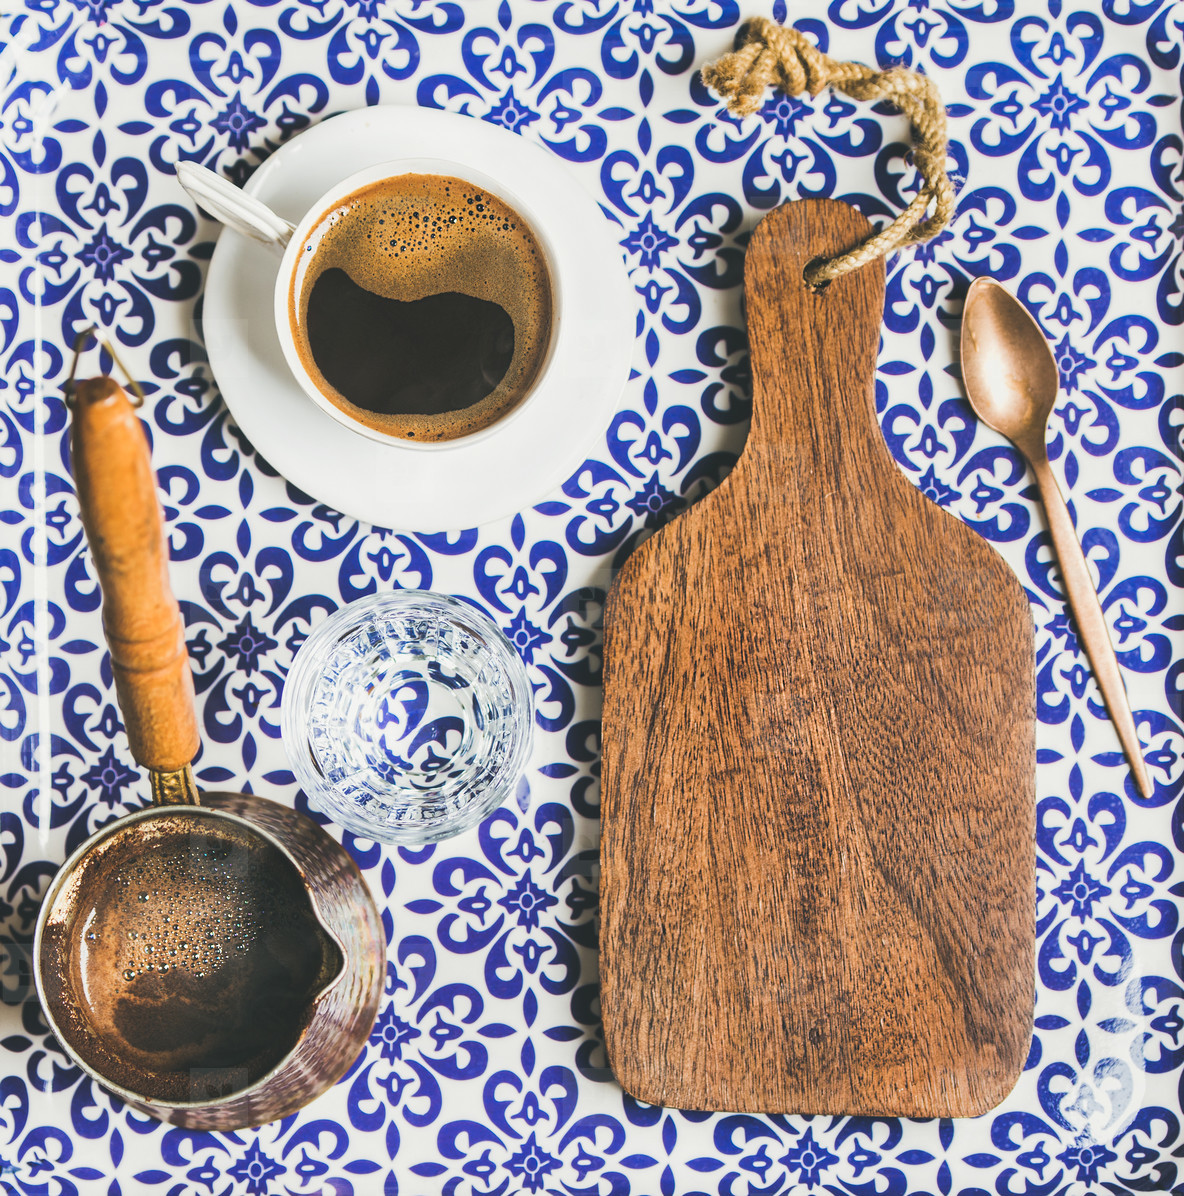 Black Turkish or Eastern style coffee in cup and cezve